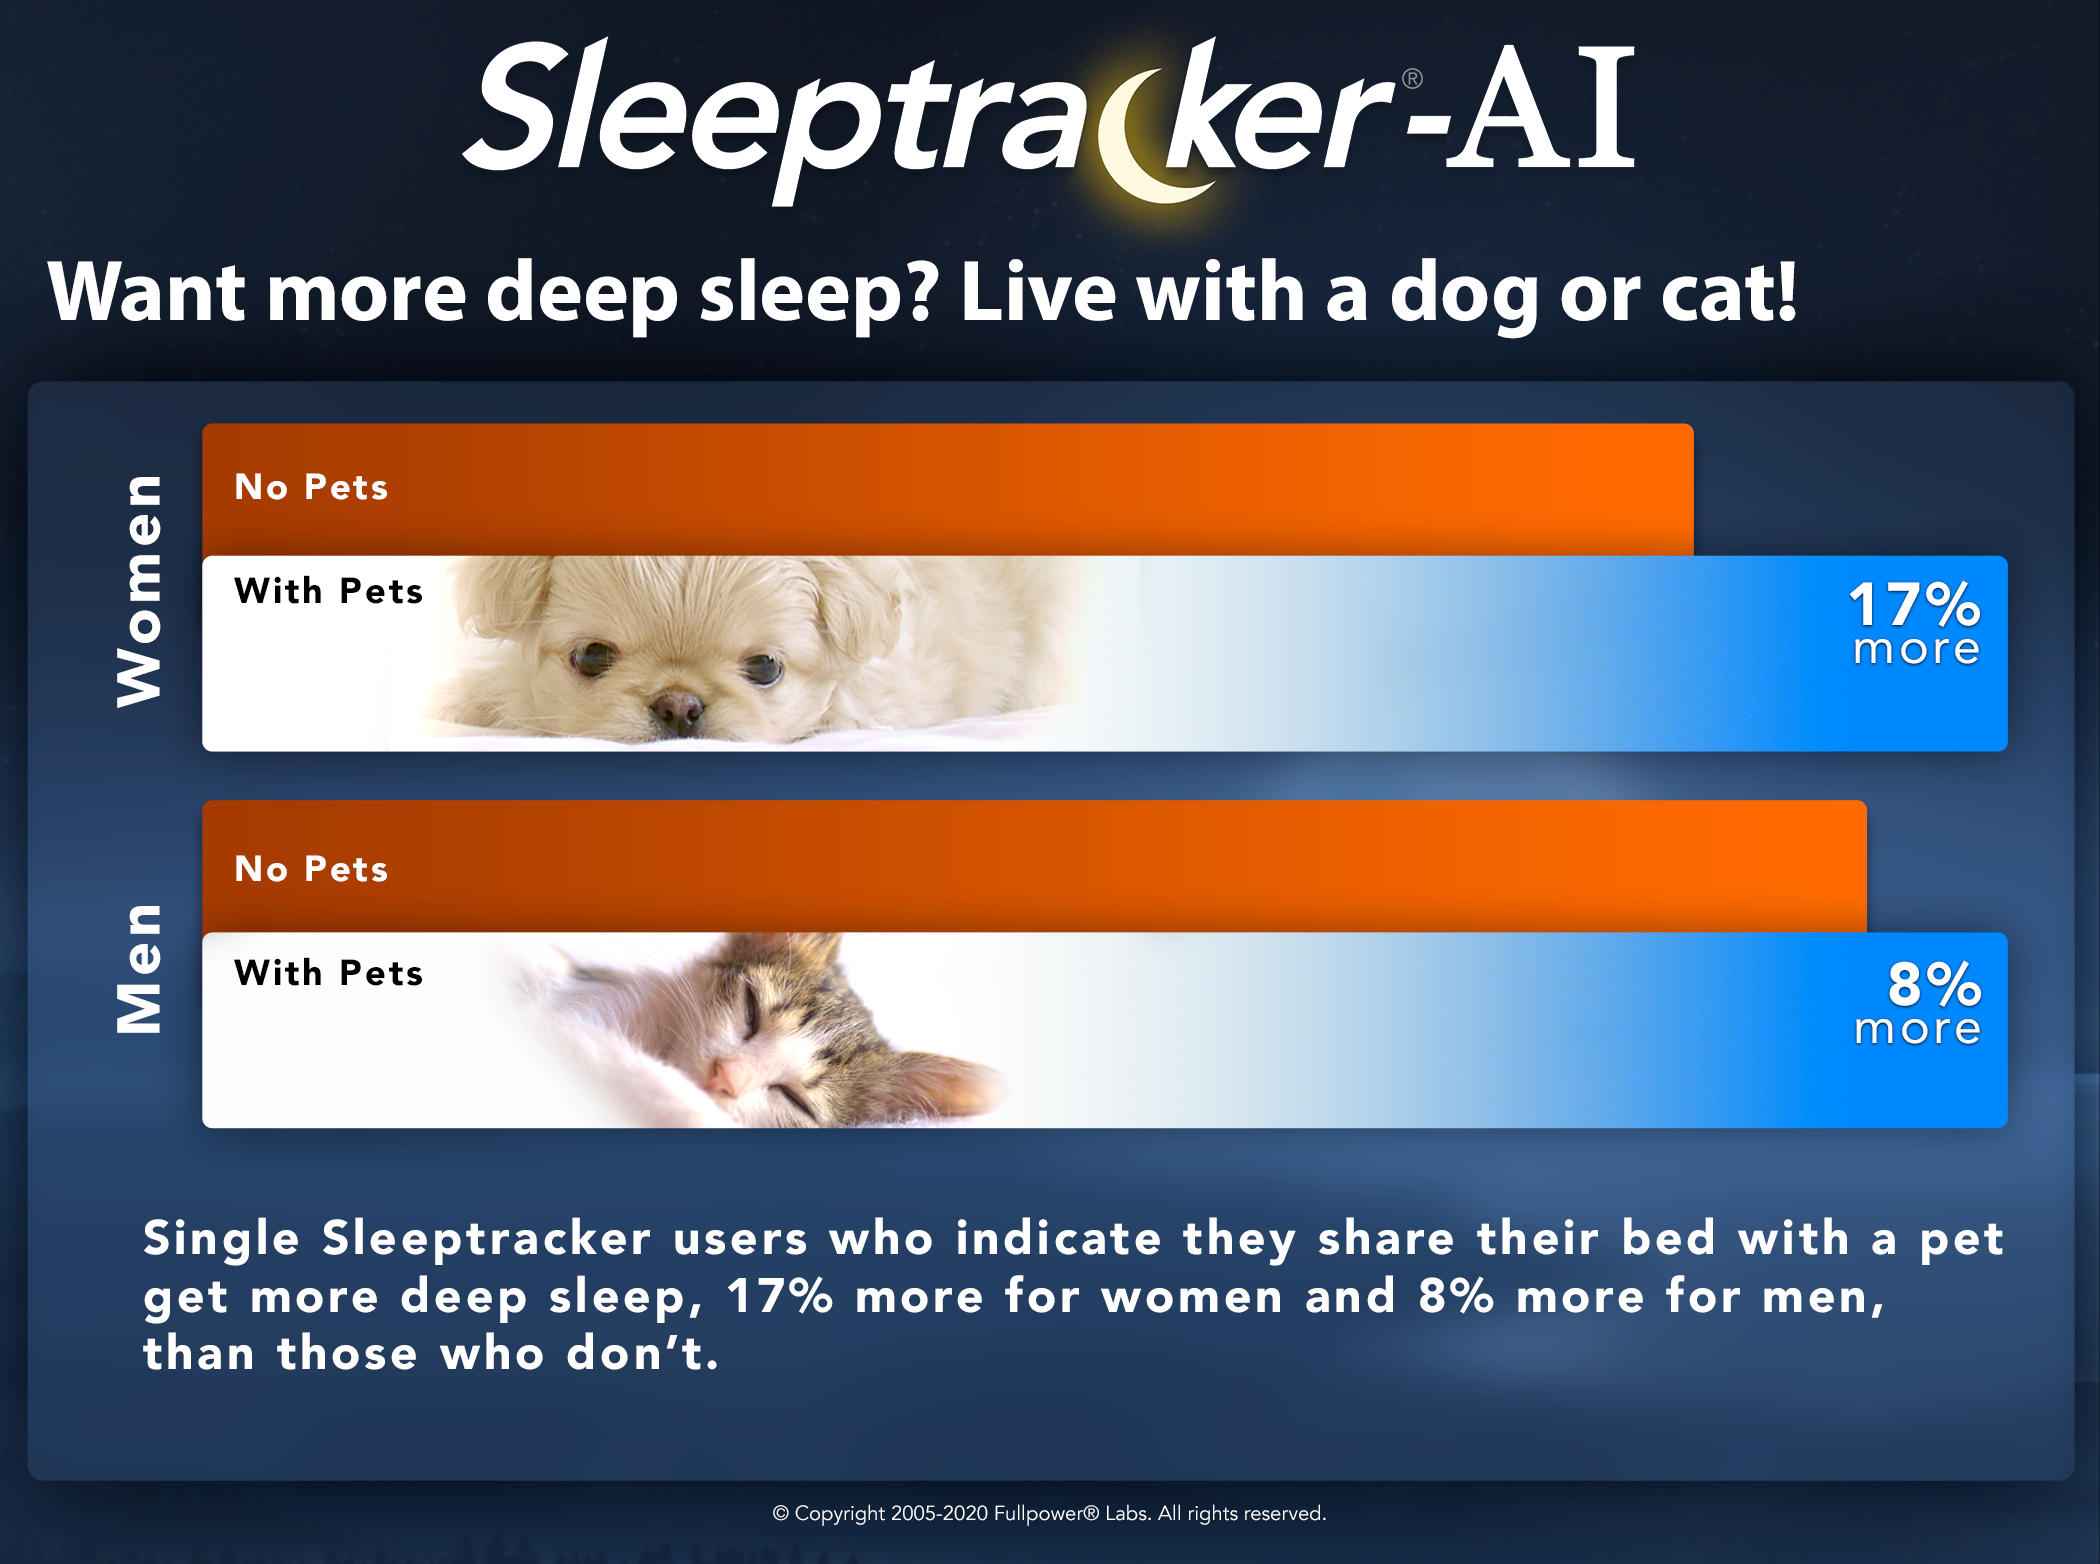 Want more deep sleep? Live with a cat or dog!